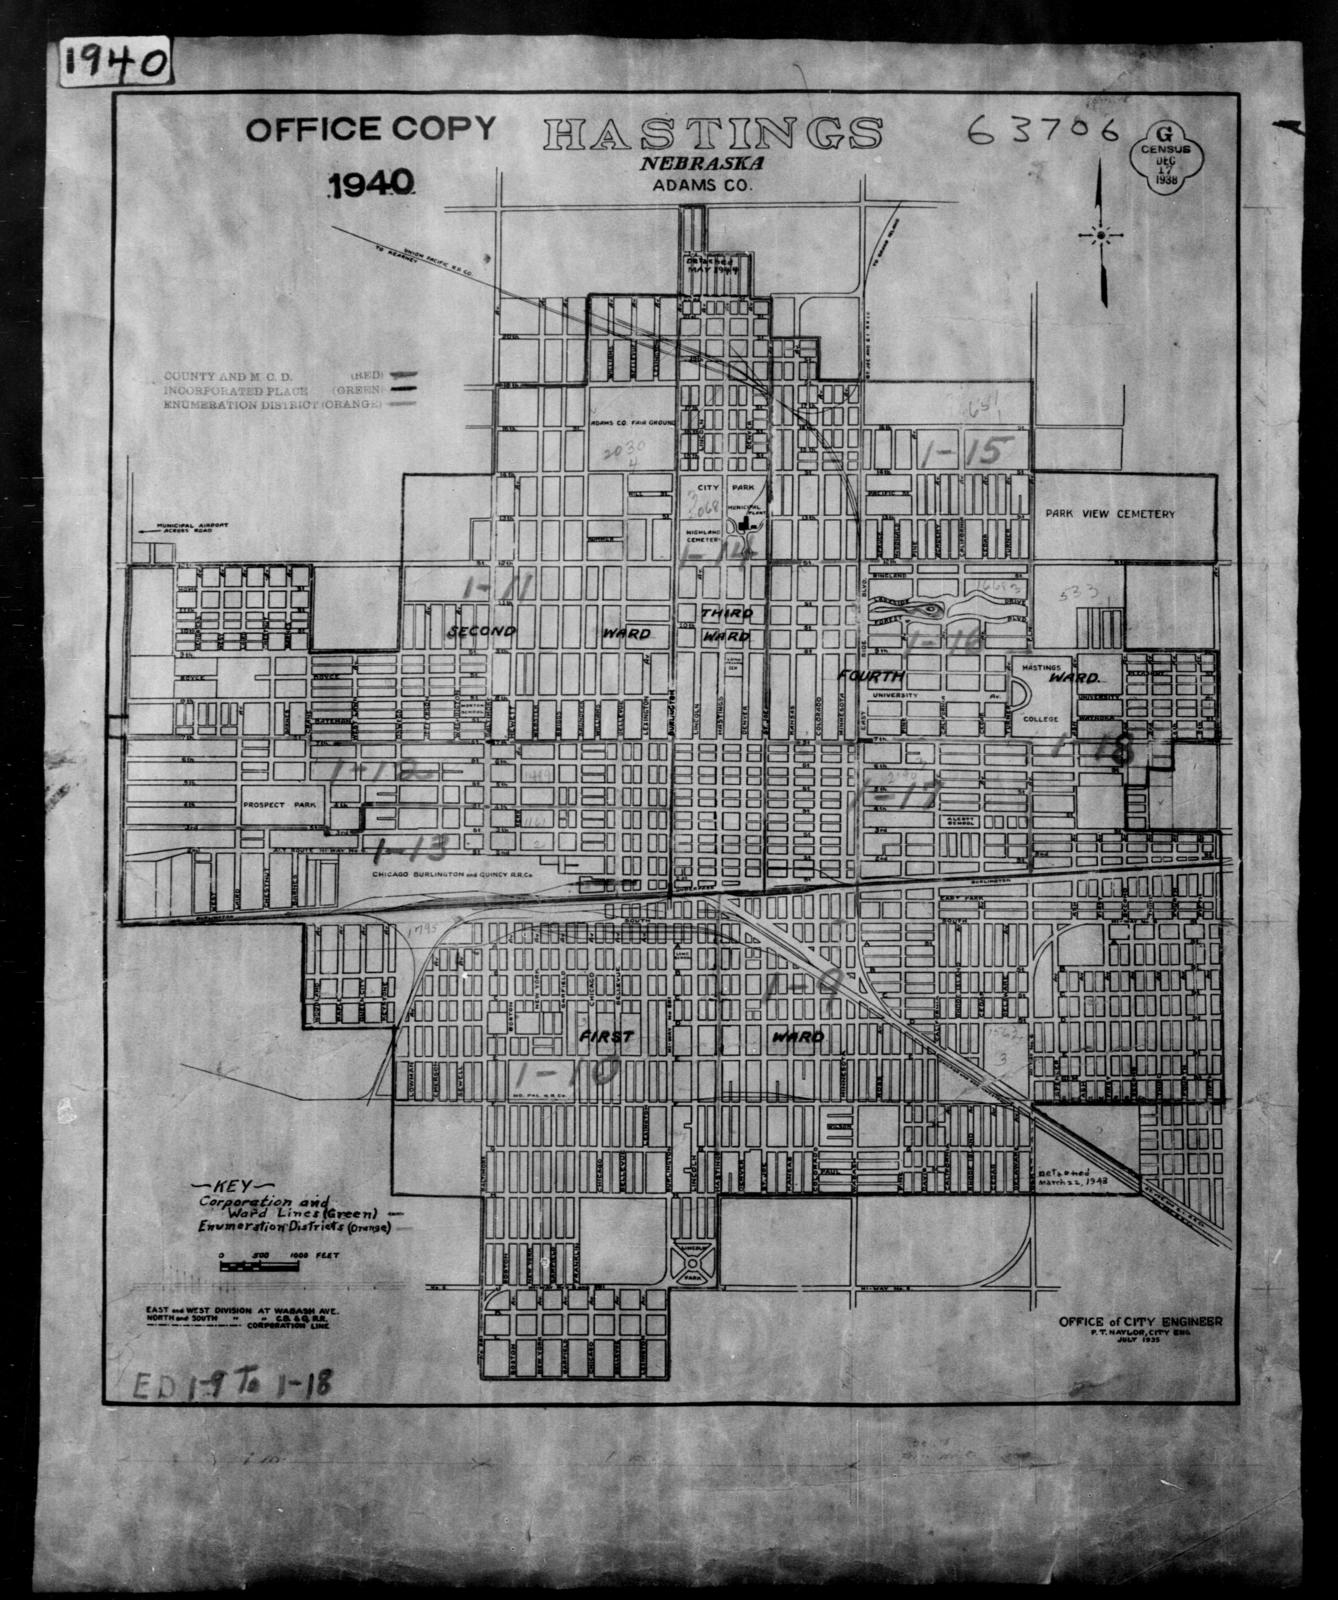 1940 Census Enumeration District Maps - Nebraska - Adams